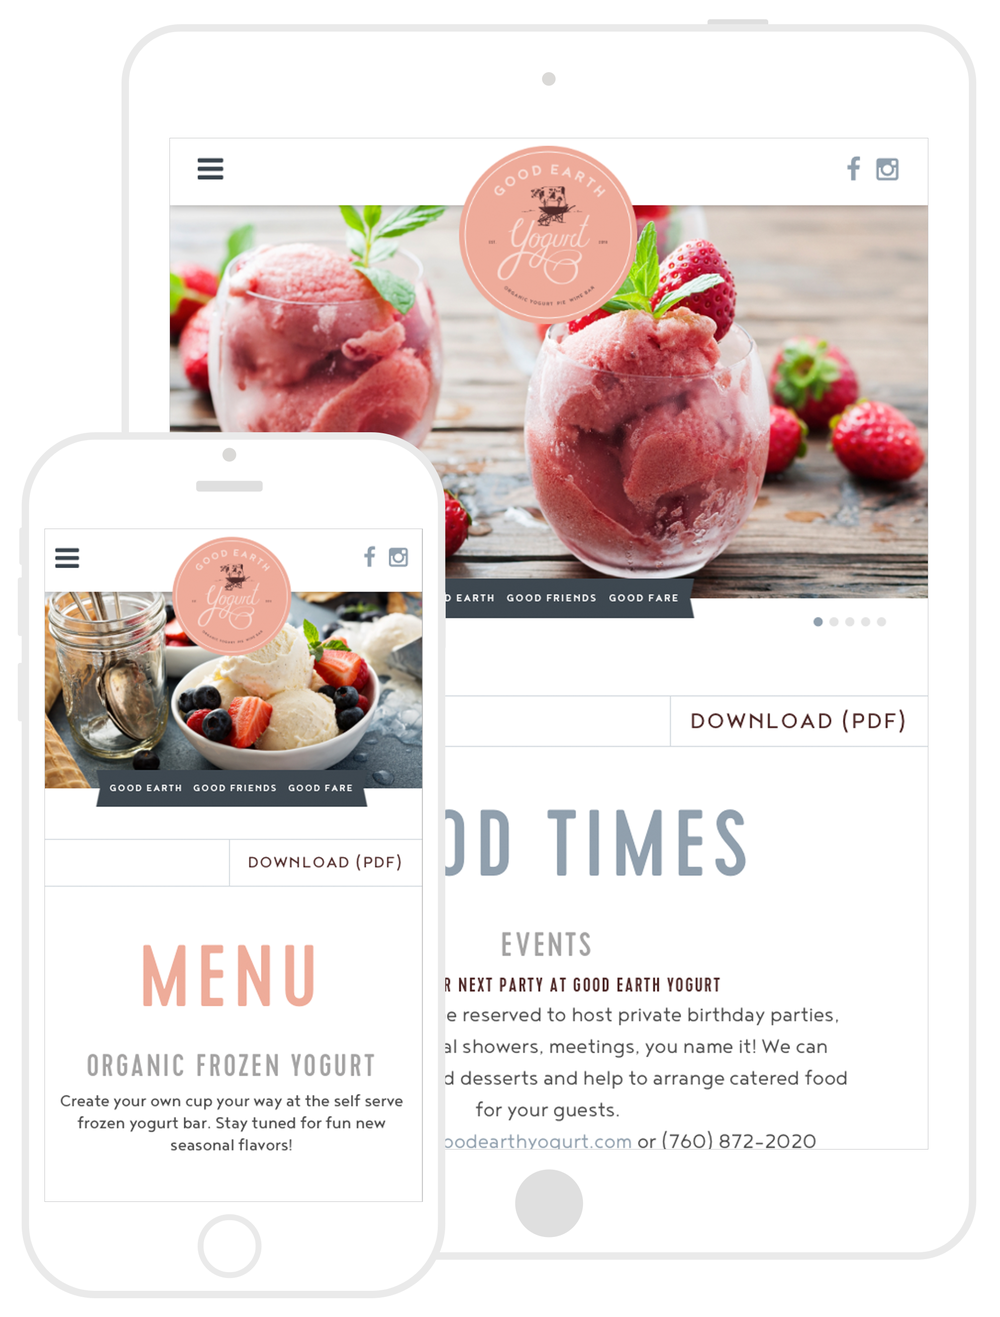 Responsive Website Design & Development by Second + West for Good Earth Yogurt